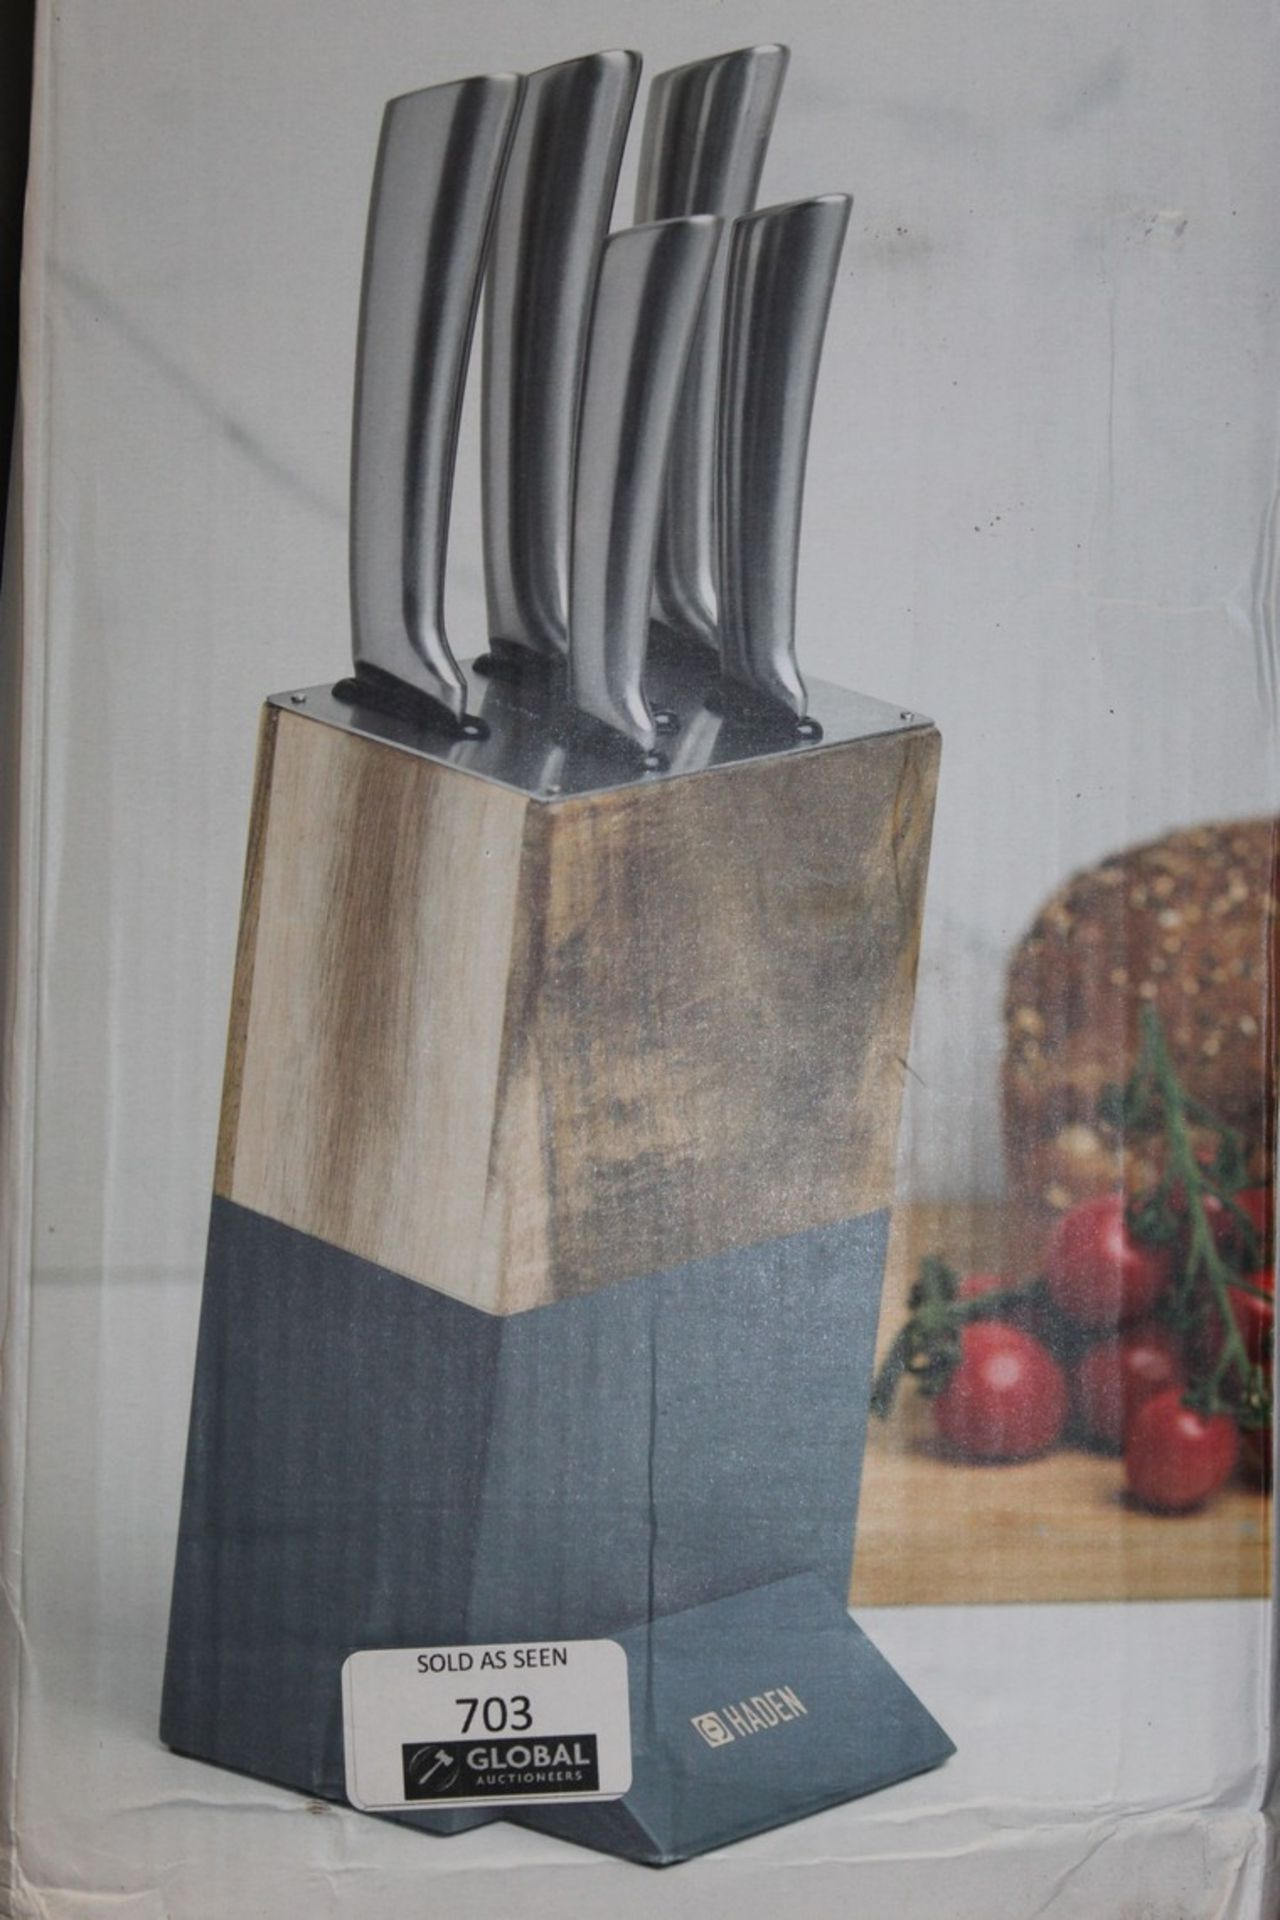 Lot 703 - Boxed Hayden Perf Acacia Knife Block Set RRP £90 (Pictures Are For Illustration Purposes Only) (